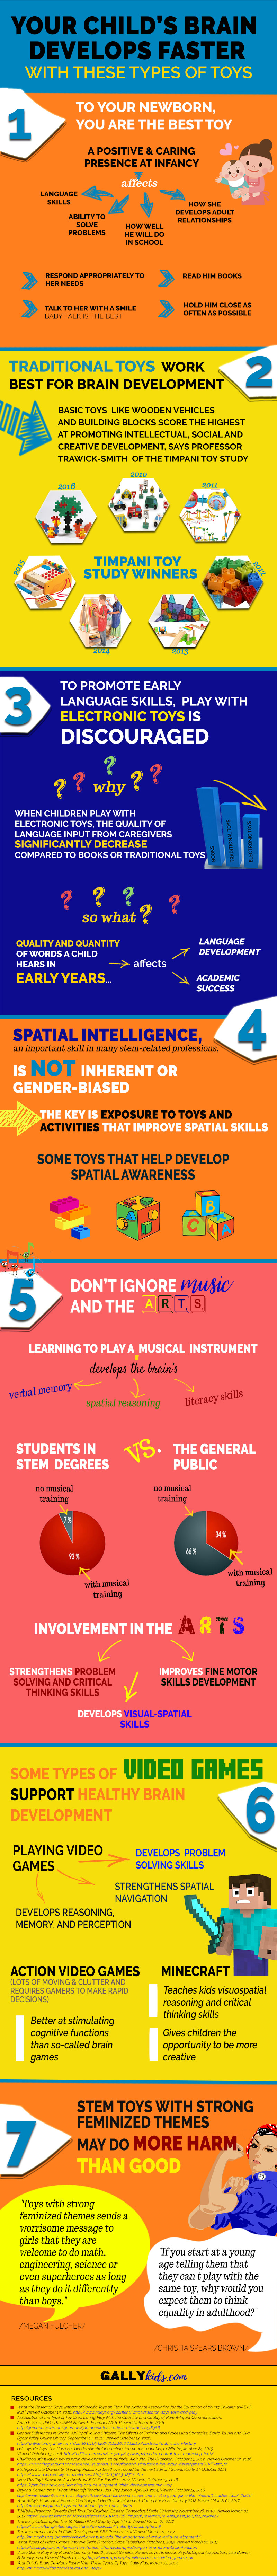 Educational Toys Infographic - This is what Science says on what educational toys to buy for your child's learning and development.